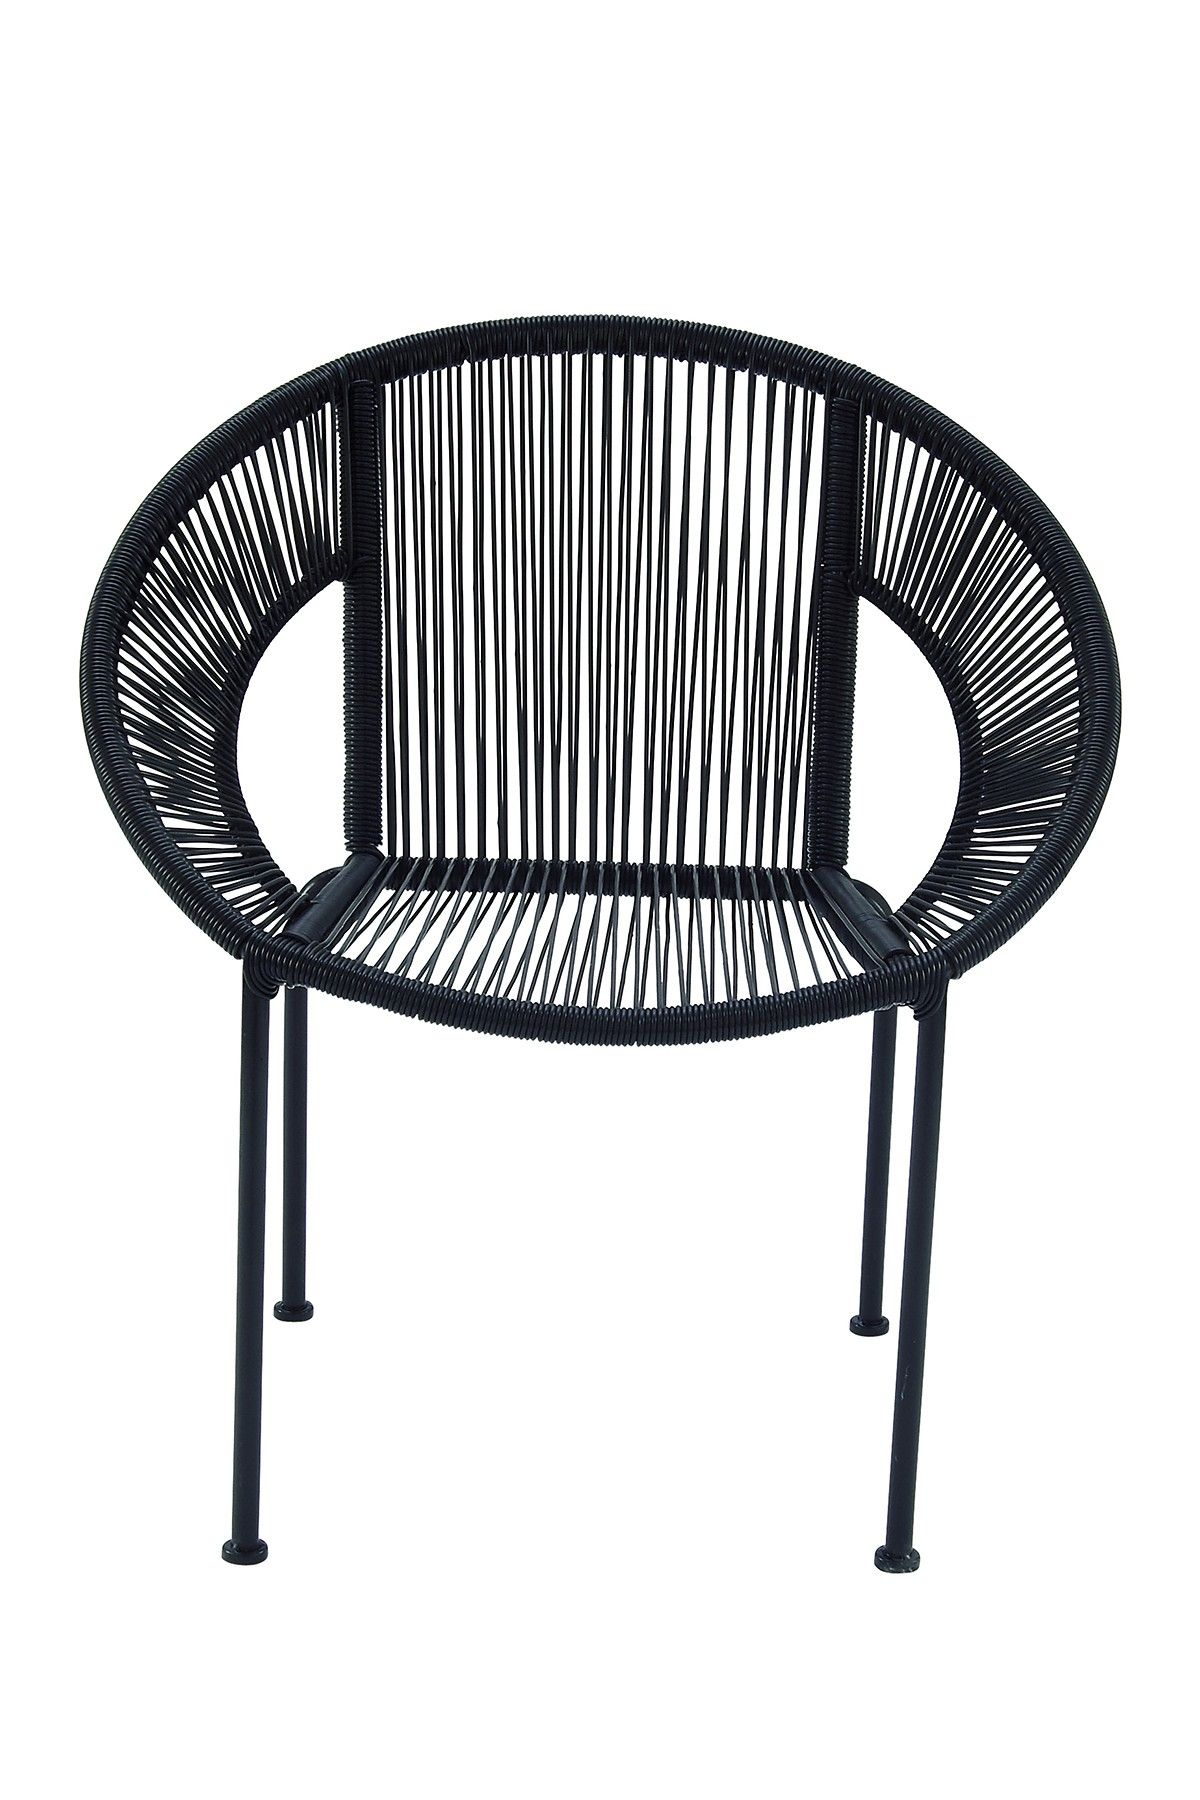 99 Metal   Plastic Chair by UMA on  HauteLook. 99 Metal   Plastic Chair by UMA on  HauteLook   MC s Sandals